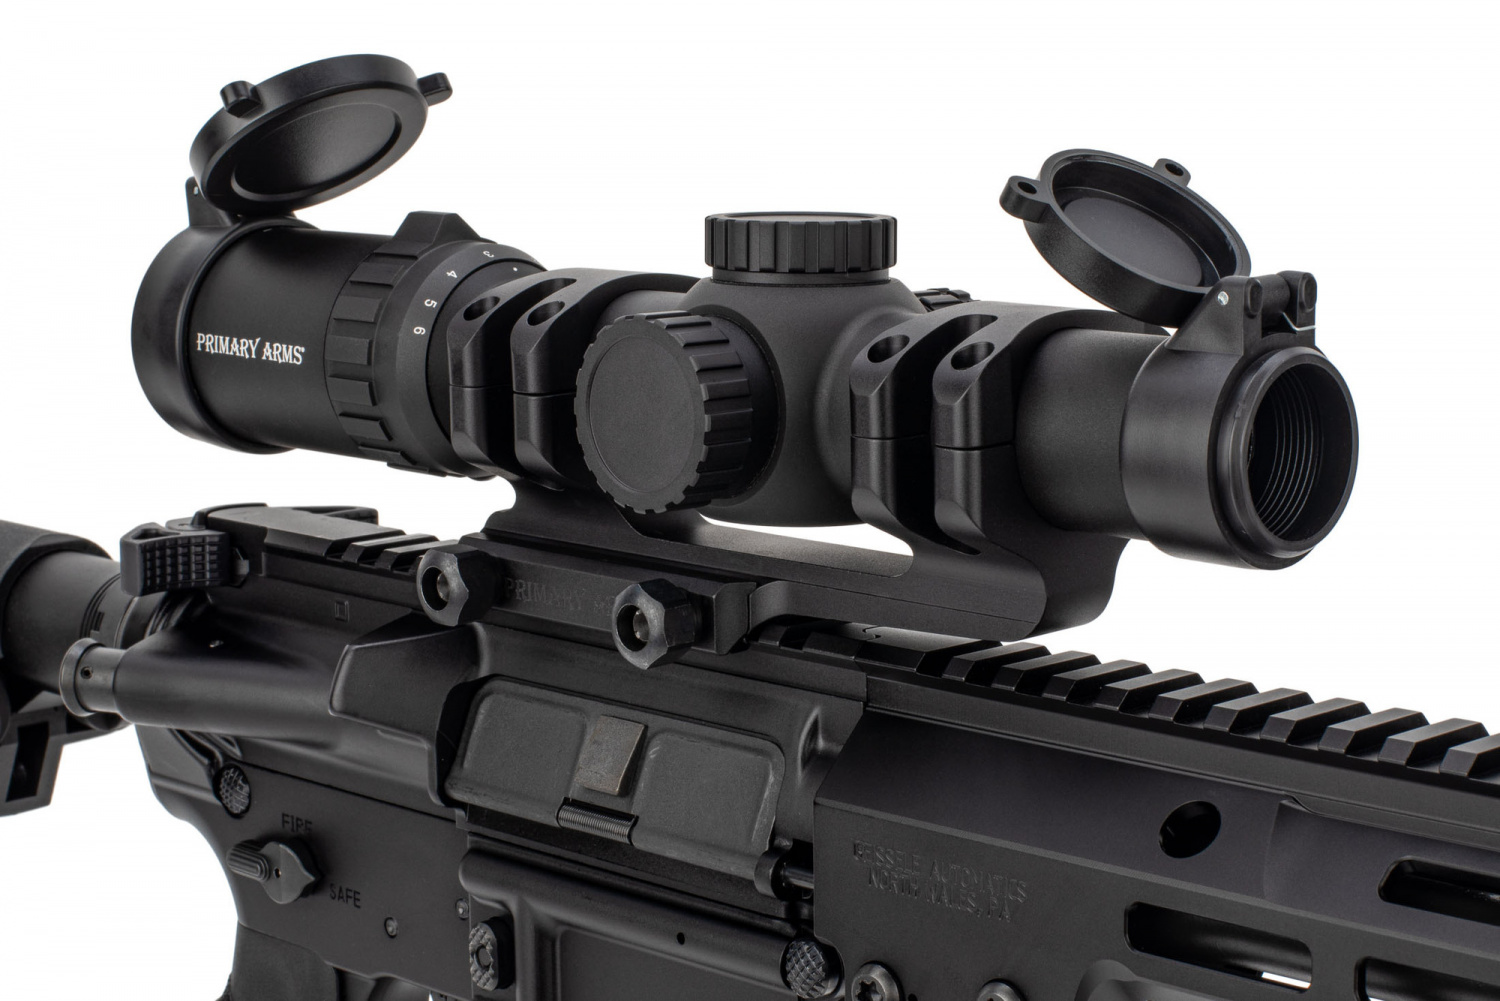 The SLx scope line is compatible with Primary Arms' accessories like the 30mm mount shown here.